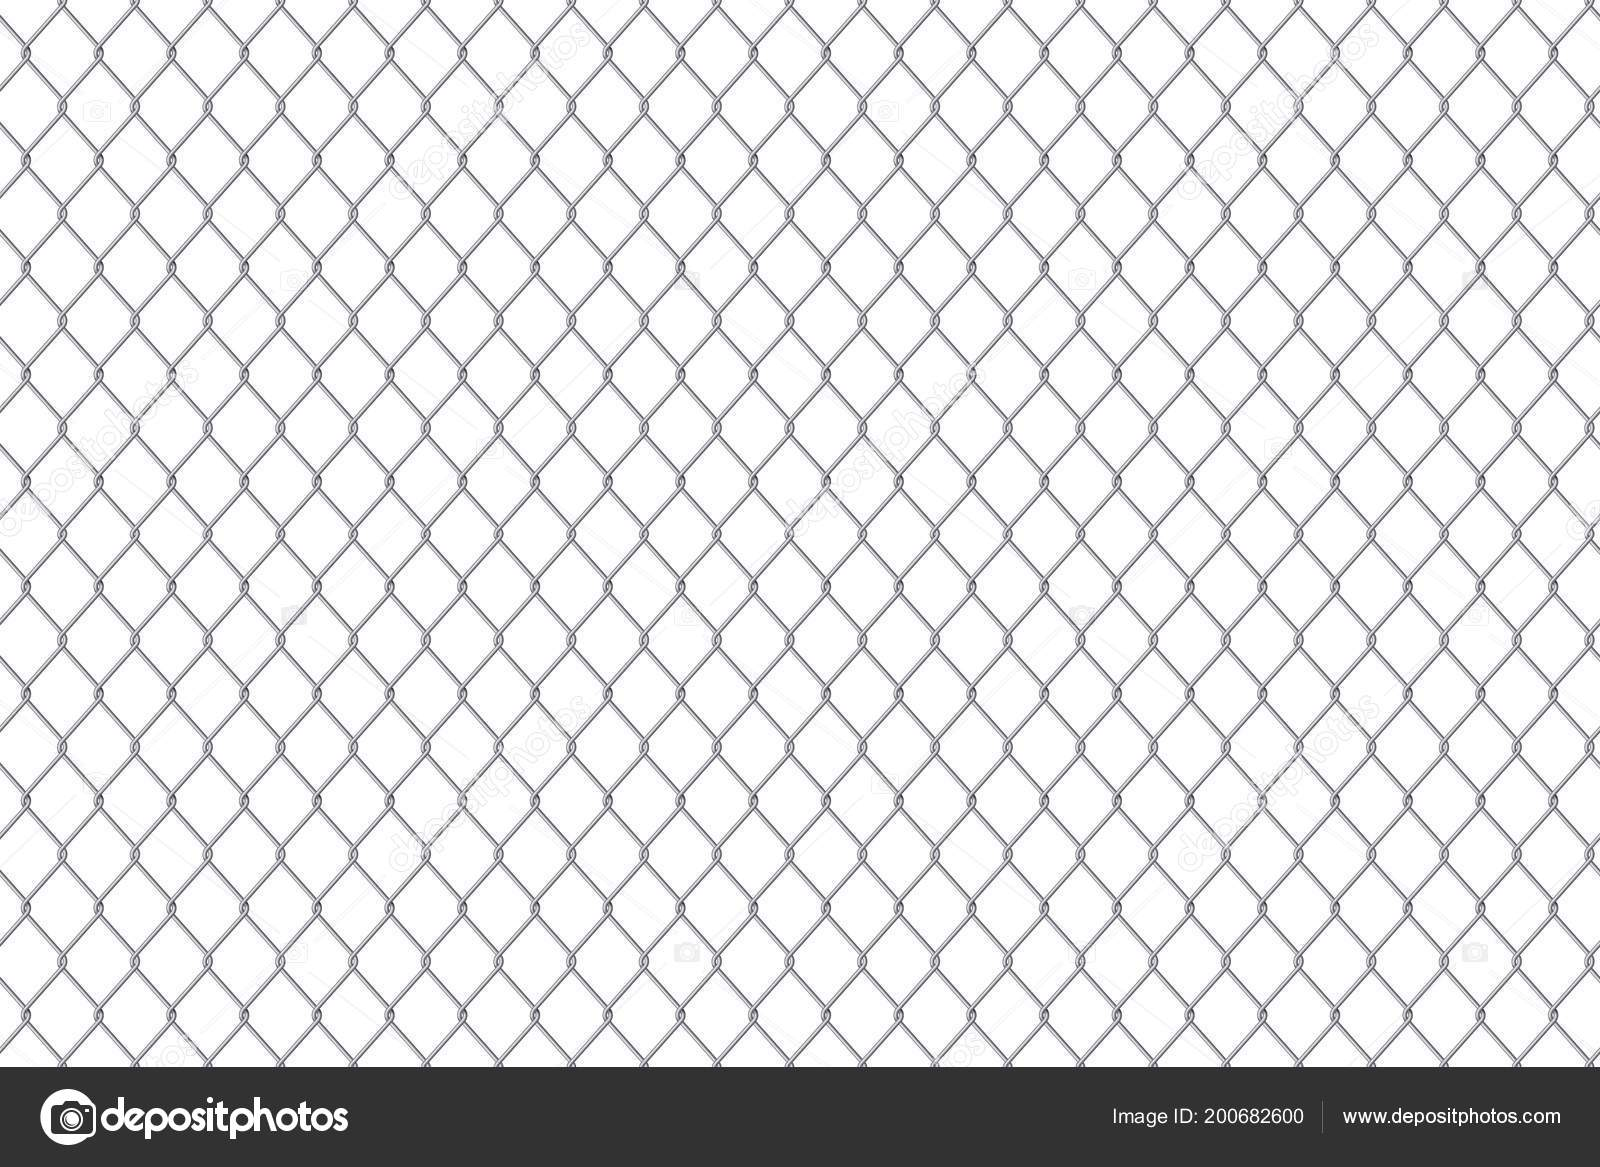 Wire Mesh No Background